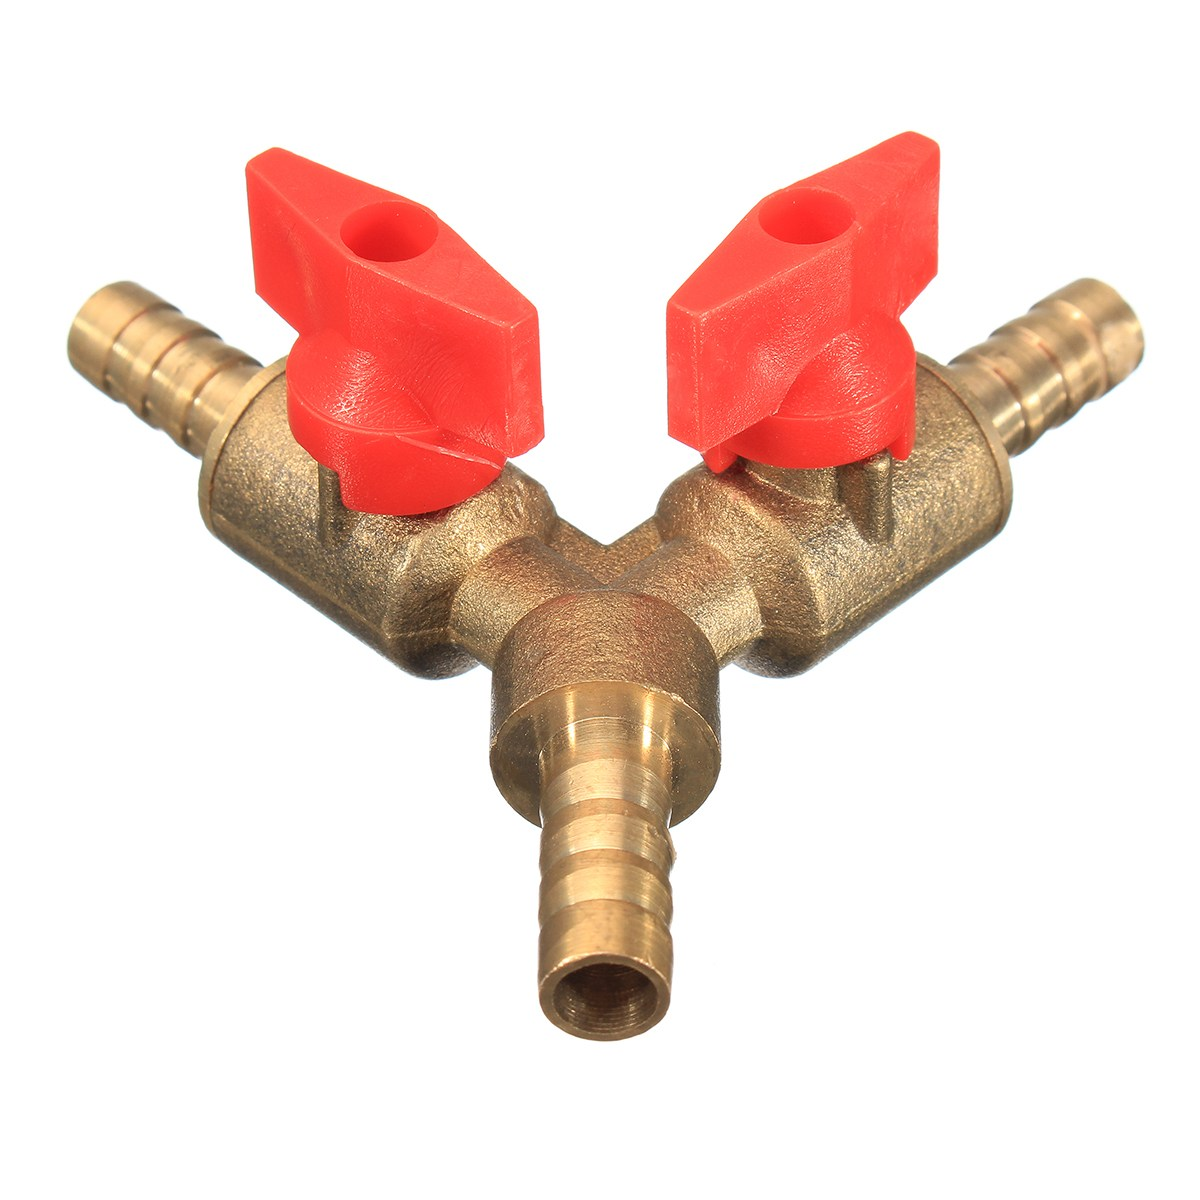 цена на 5/16 8mm Brass Y 3-Way Shut off Ball Valve Fitting Hose Barb Fuel Gas CLAMP Tee New Arrival